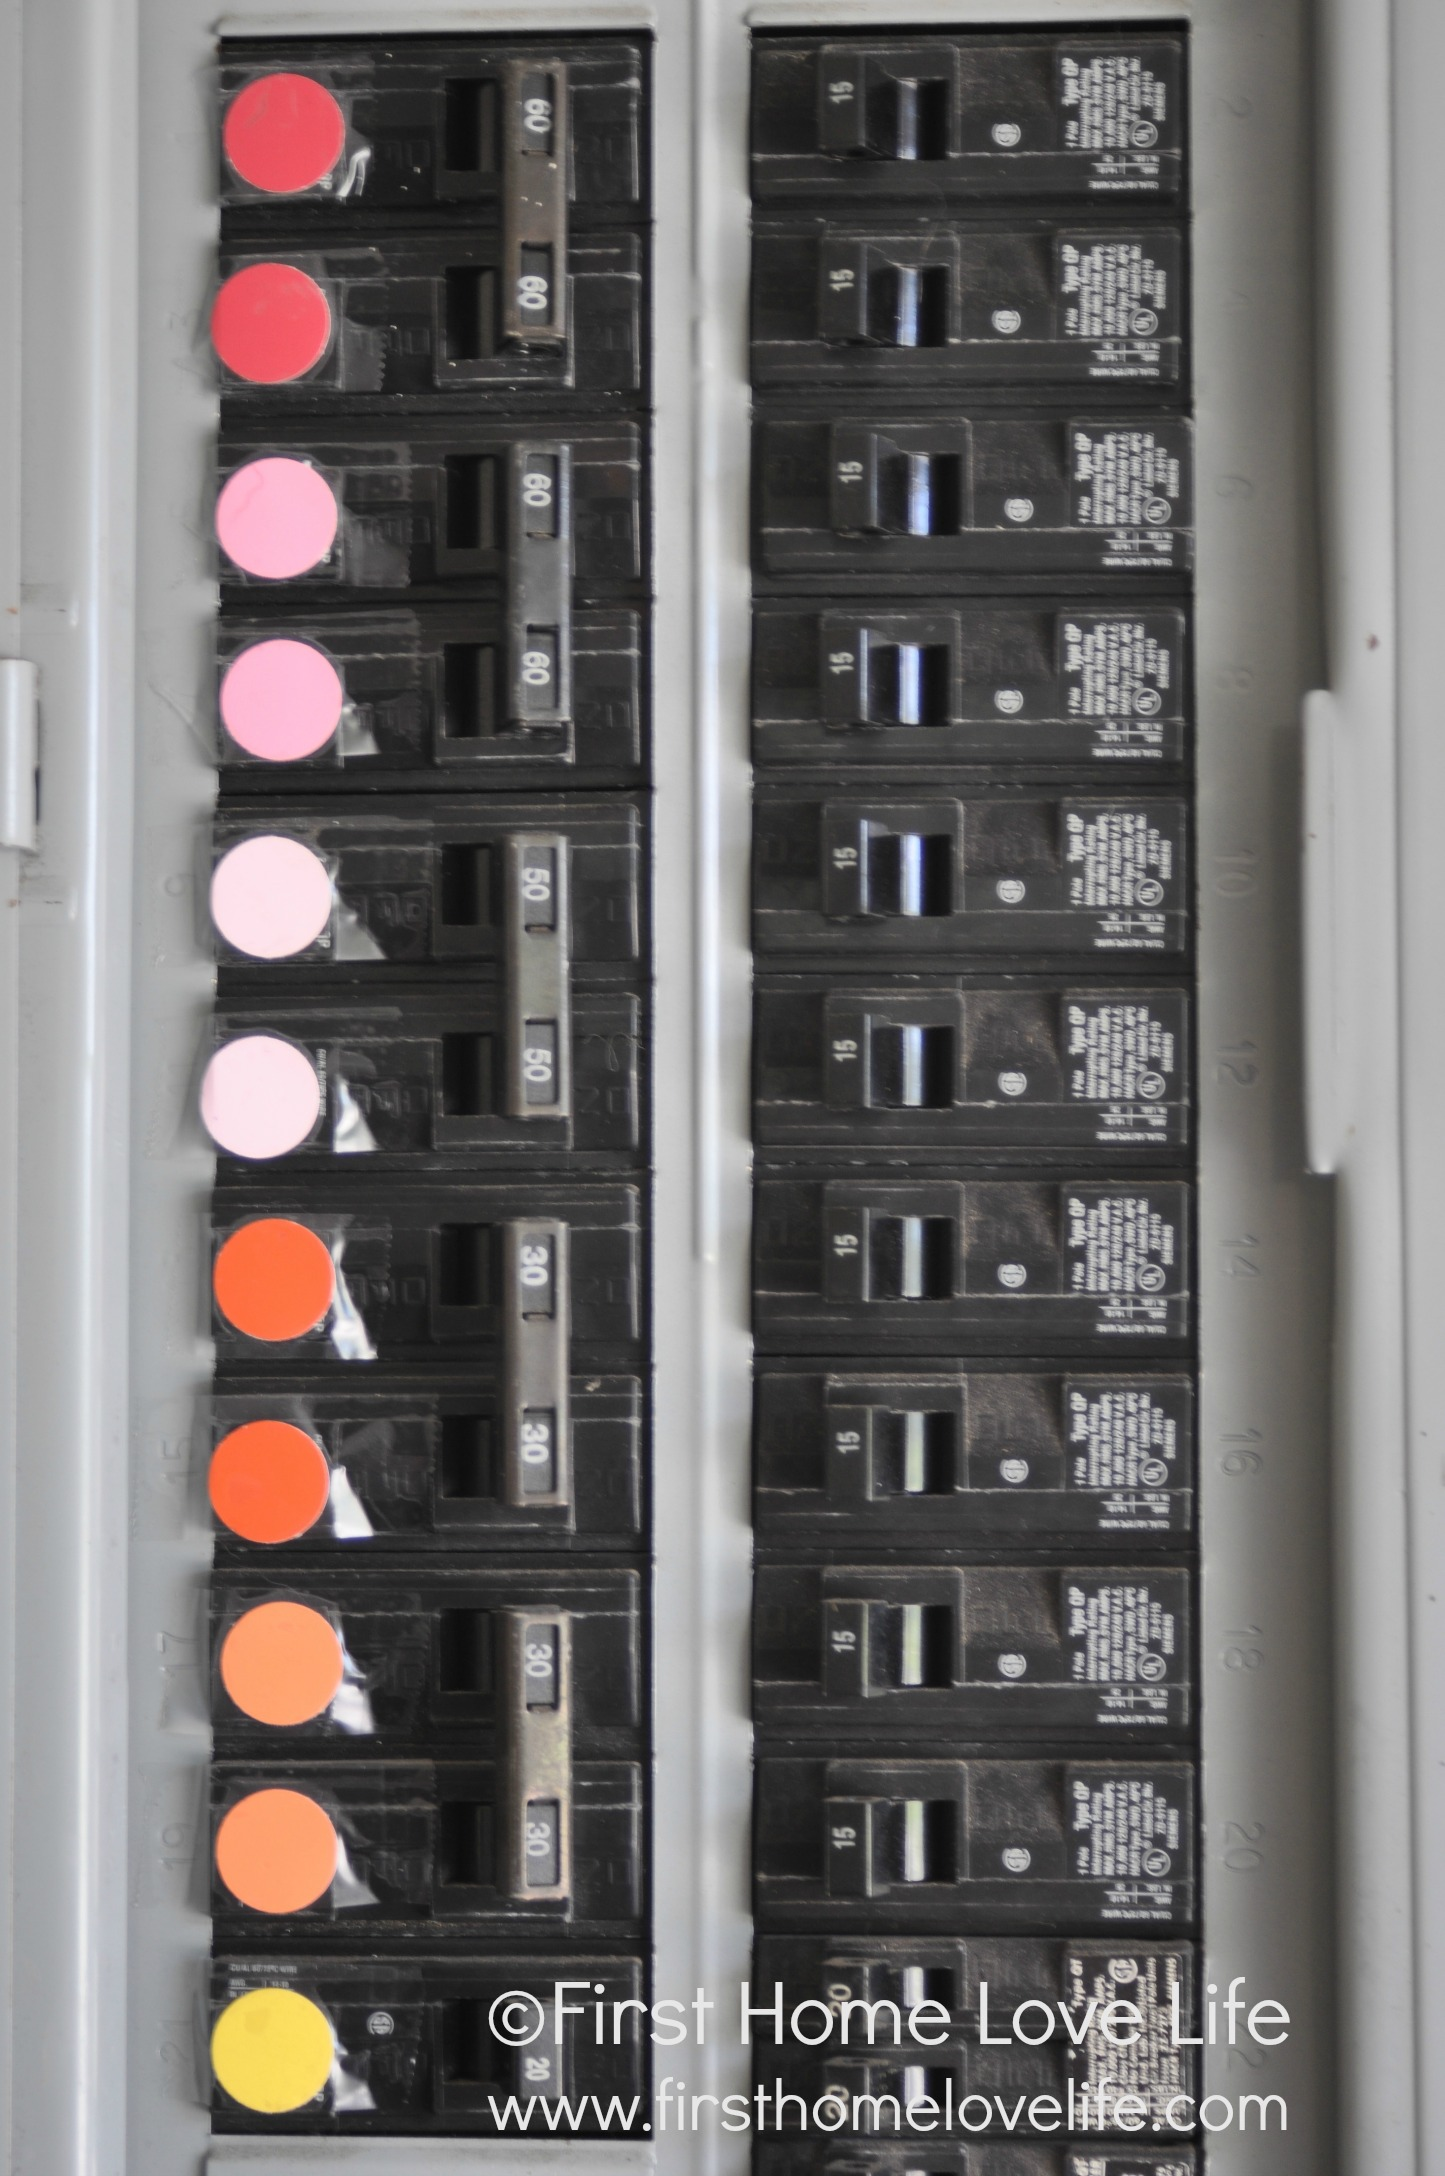 Color Coding Your Circuit Breaker Box First Home Love Life 06turnoffcircuitbreakerbox Doublebox